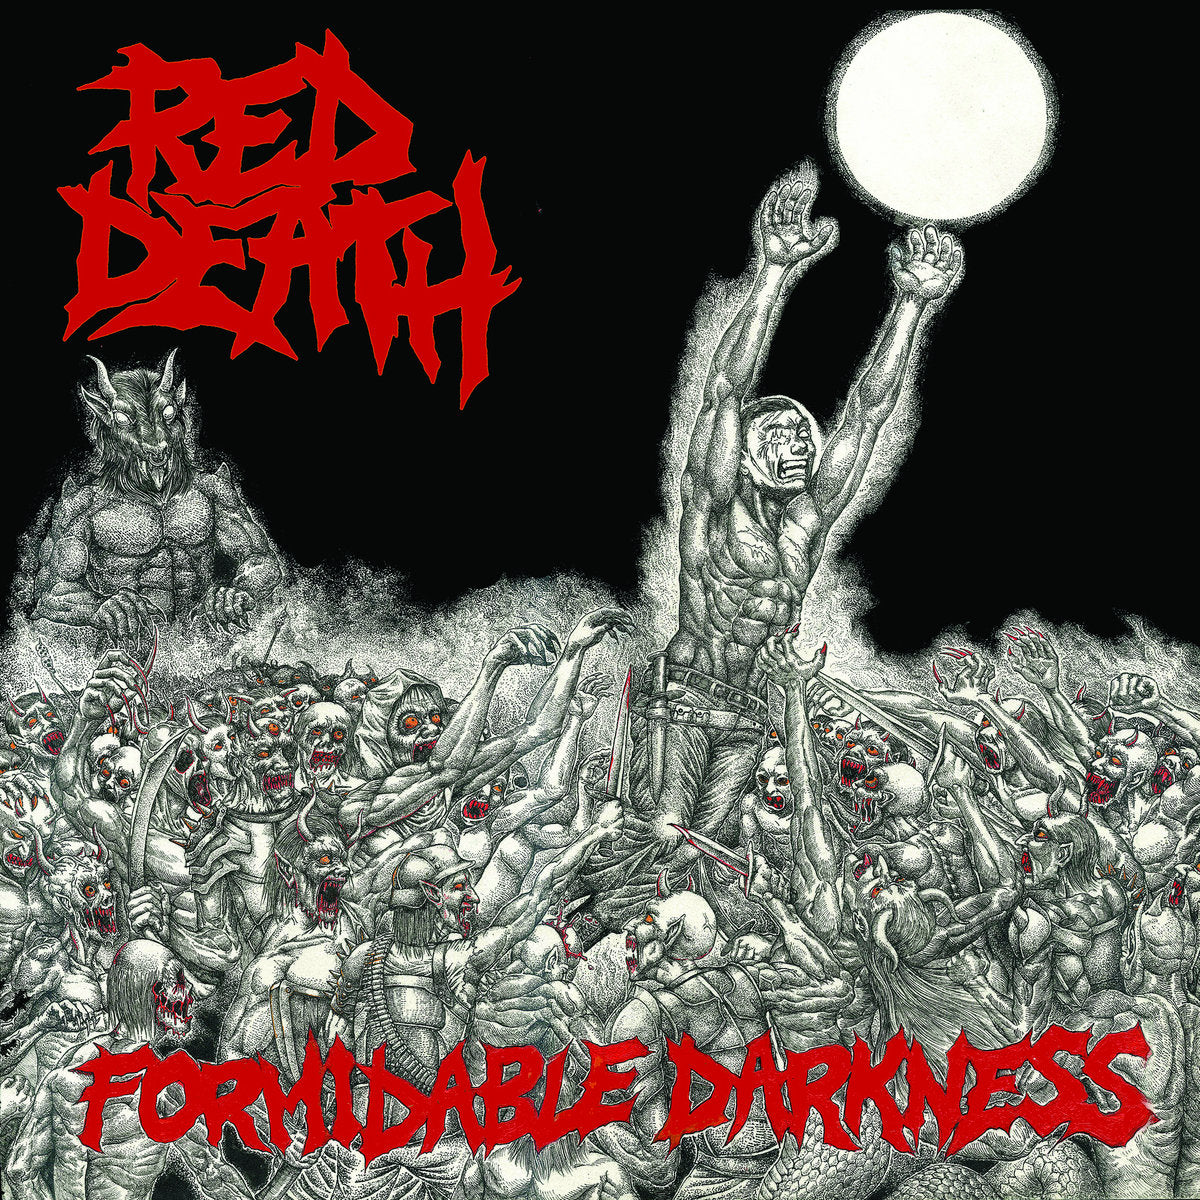 RED DEATH 'Formidable Darkness' LP